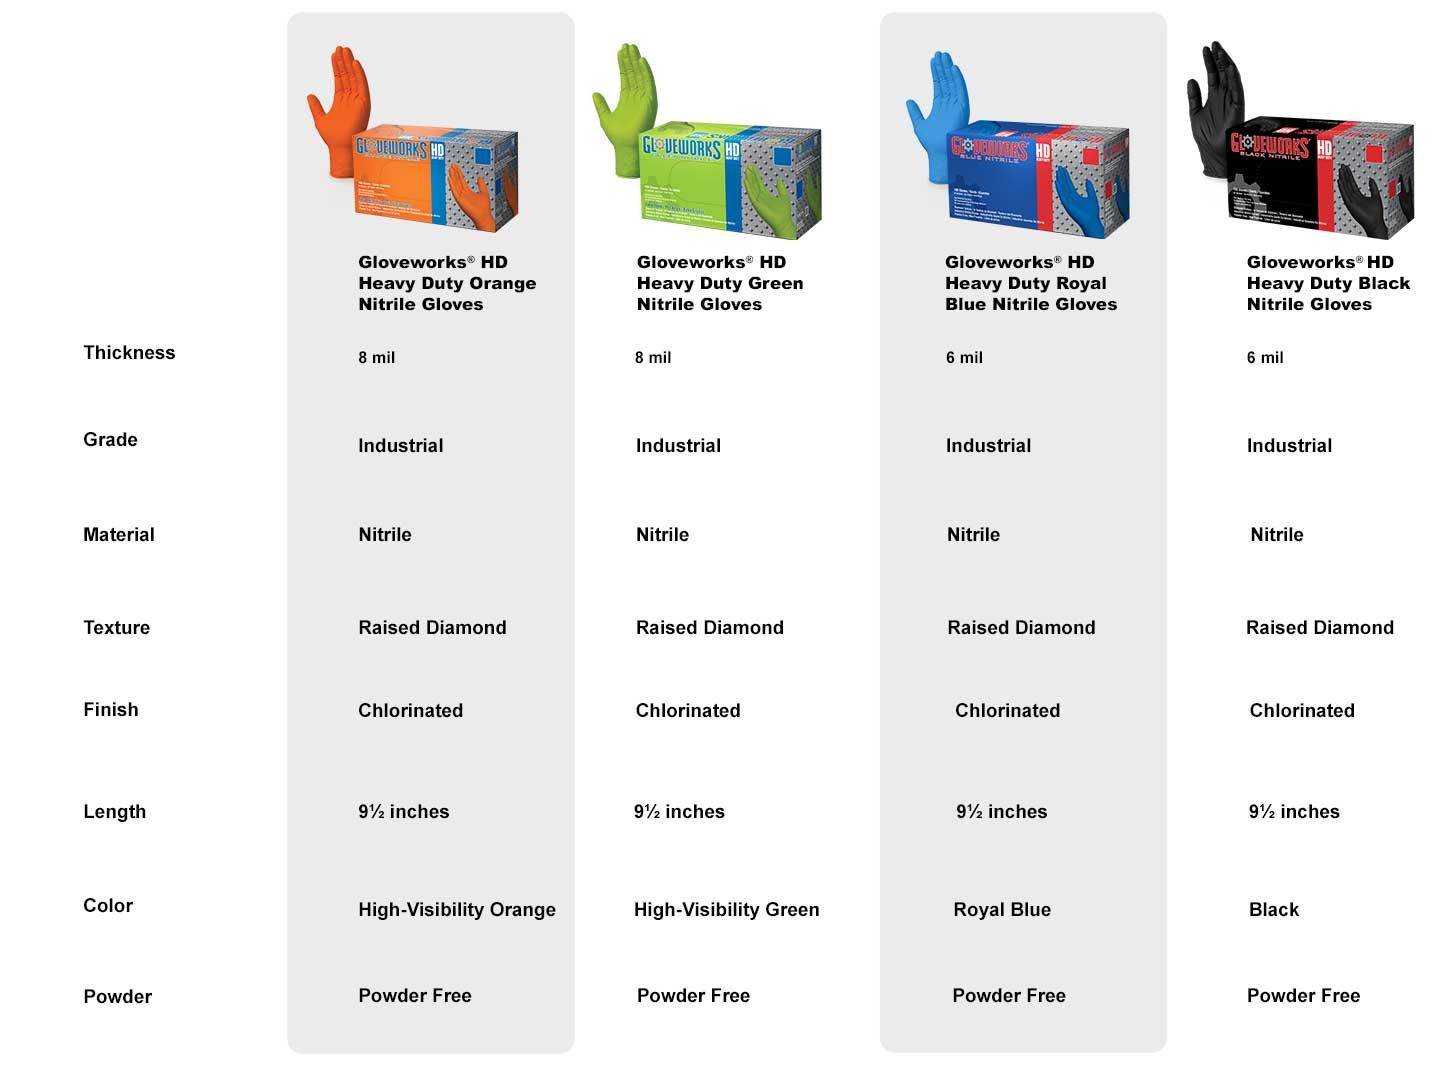 Gloveworks HD GWON Orange Nitrile Industrial Latex Free Disposable Gloves Comparison Chart